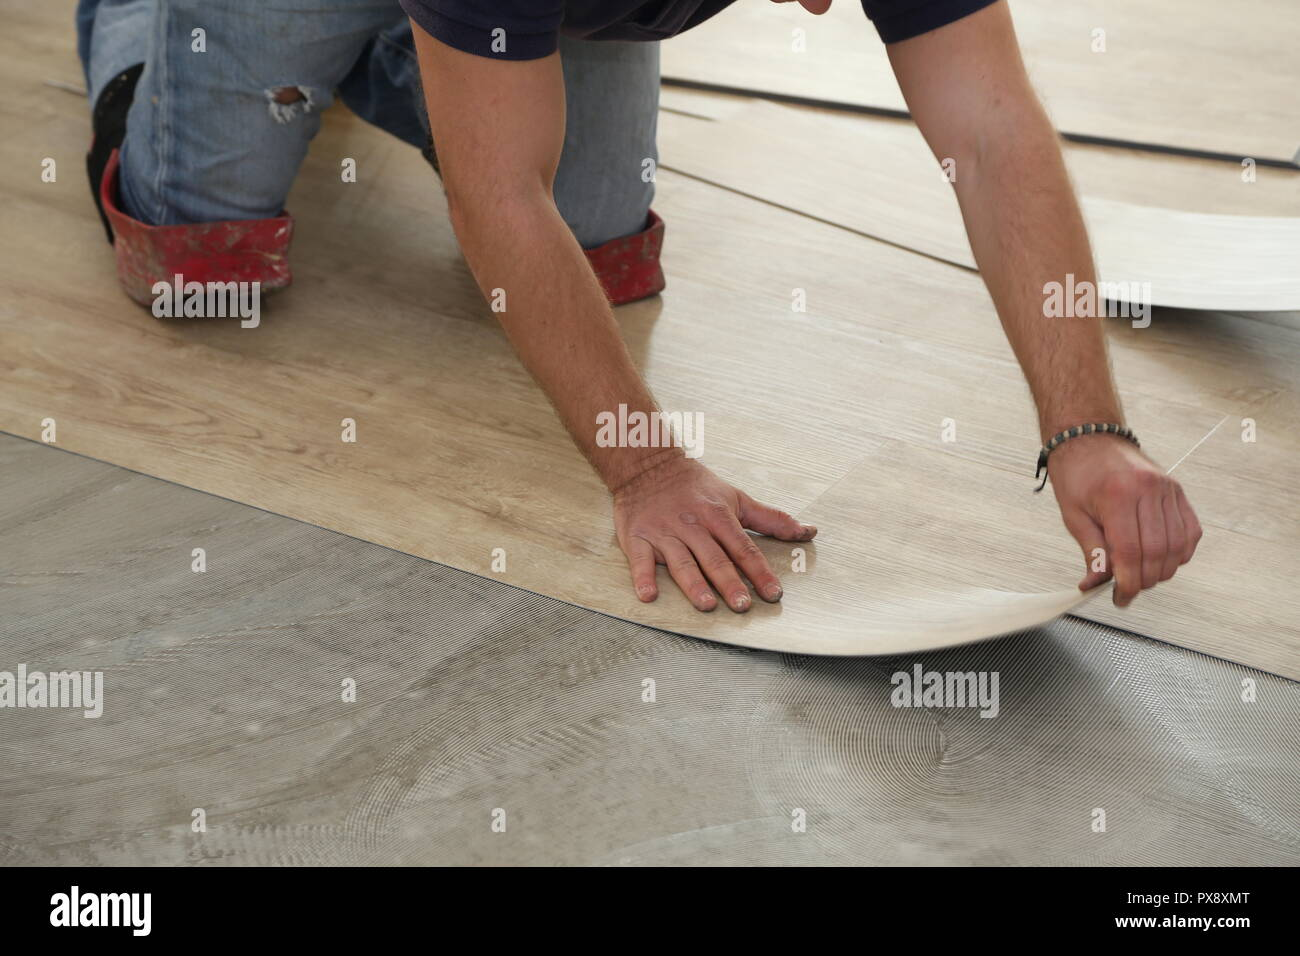 Installing Vinyl Tile Worker Installing New Vinyl Tile Floor Stock Photo 222702056 Alamy